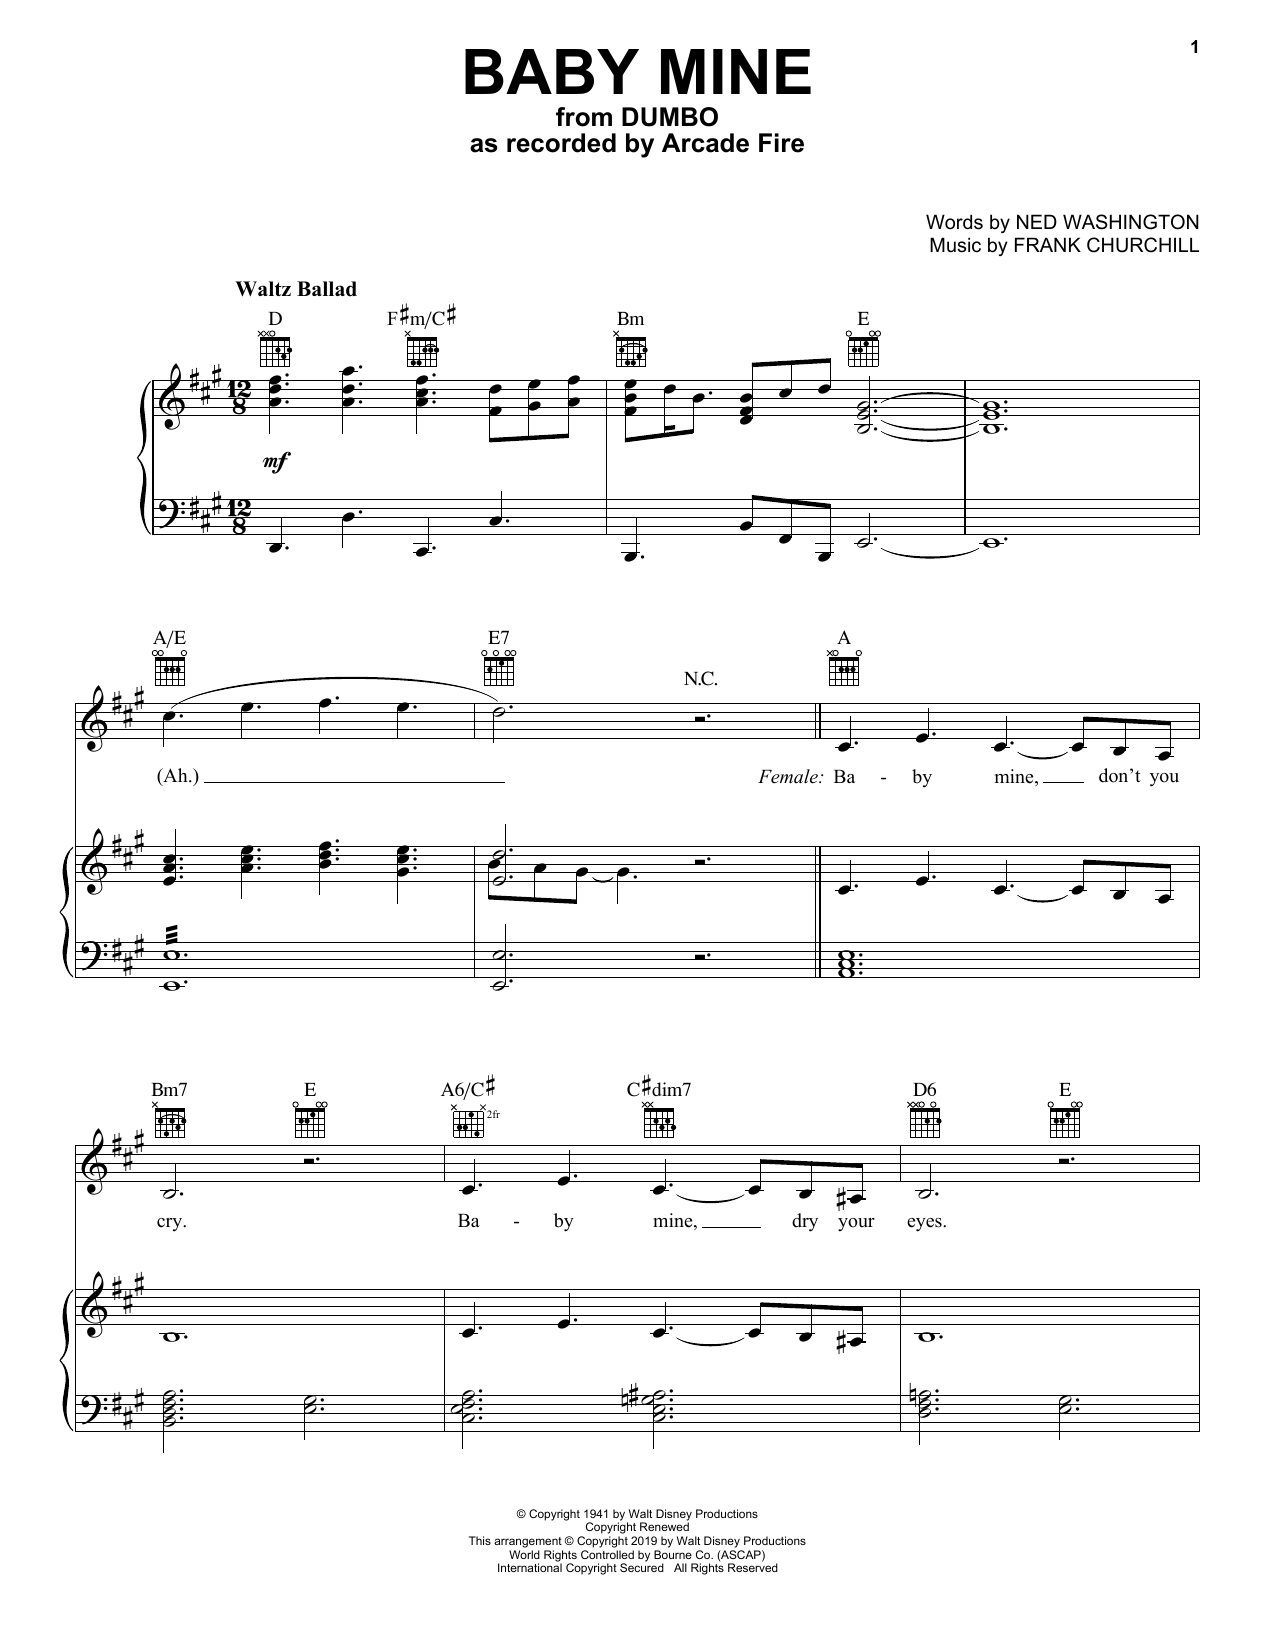 Arcade Fire Baby Mine (from the Motion Picture Dumbo) sheet music notes and chords. Download Printable PDF.